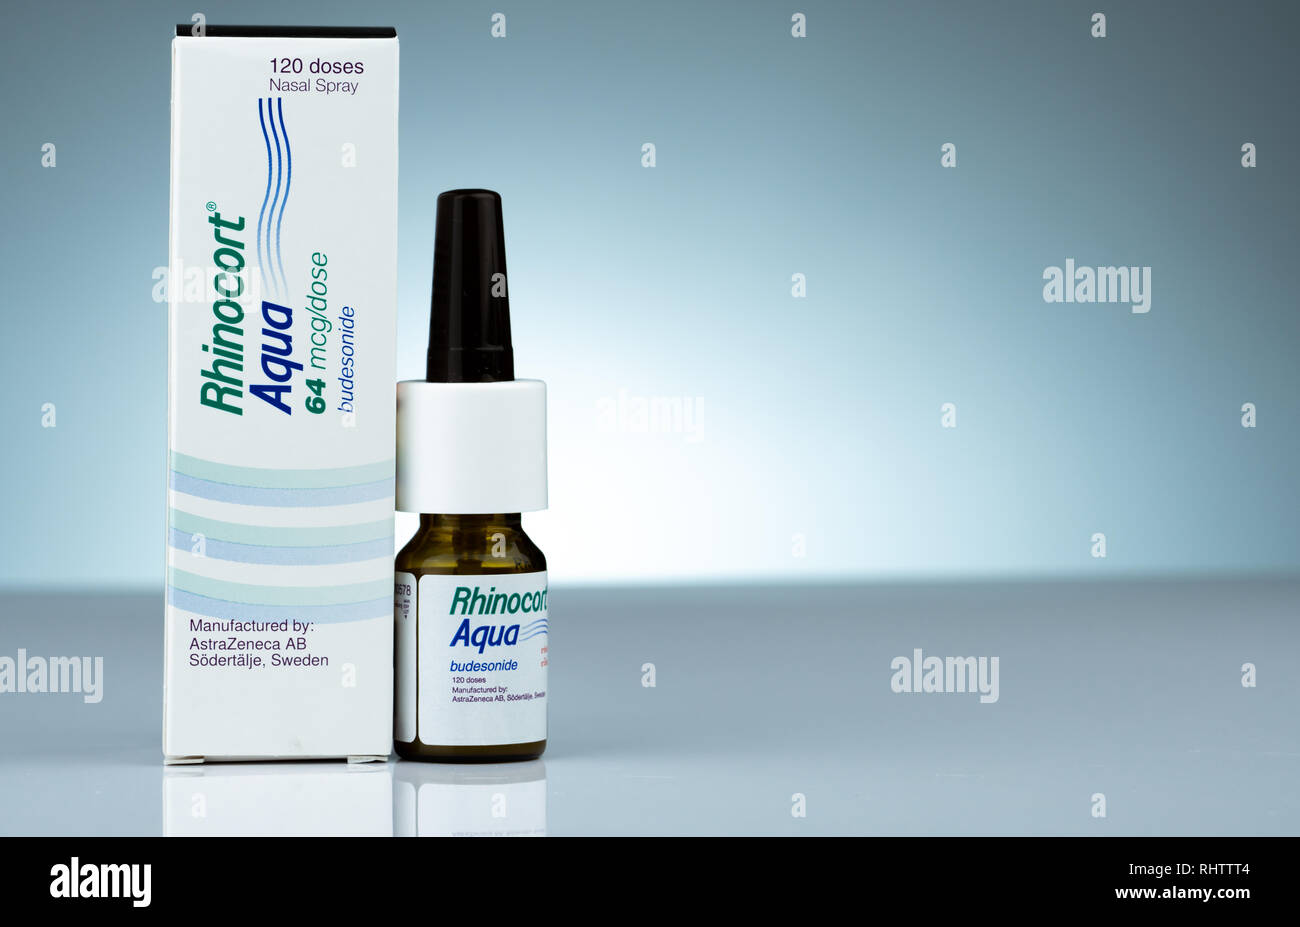 CHONBURI, THAILAND-OCTOBER 17, 2018 : Rhinocort Aqua 64 mcg/dose 120 doses. Budesonide nasal spray product of Johnson & Johnson (Thailand). Manufactur - Stock Image